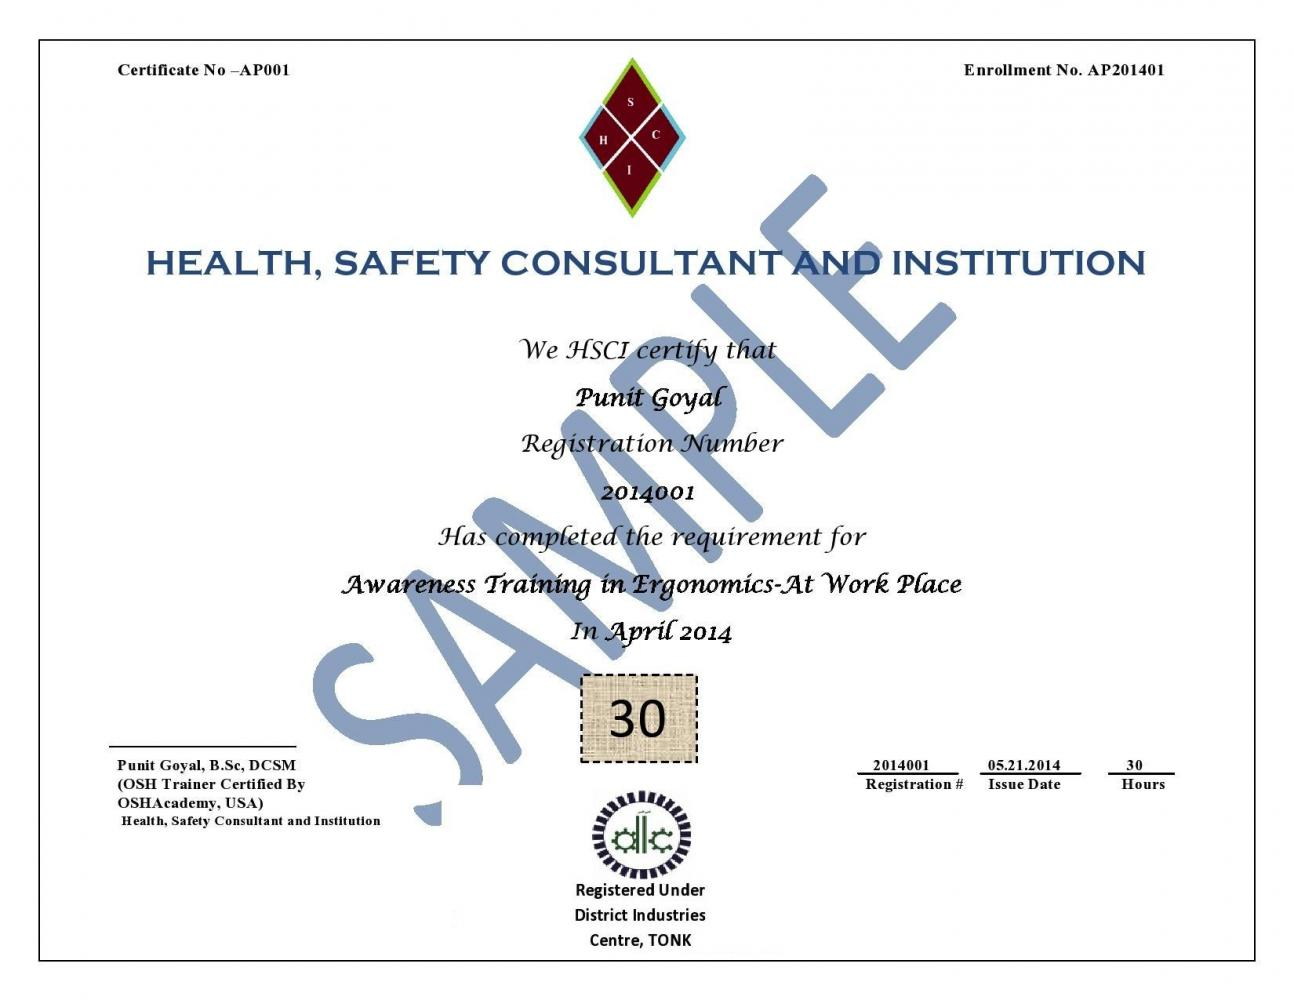 Healthsafety consultant and institutionnewai home services certificate sample xflitez Gallery